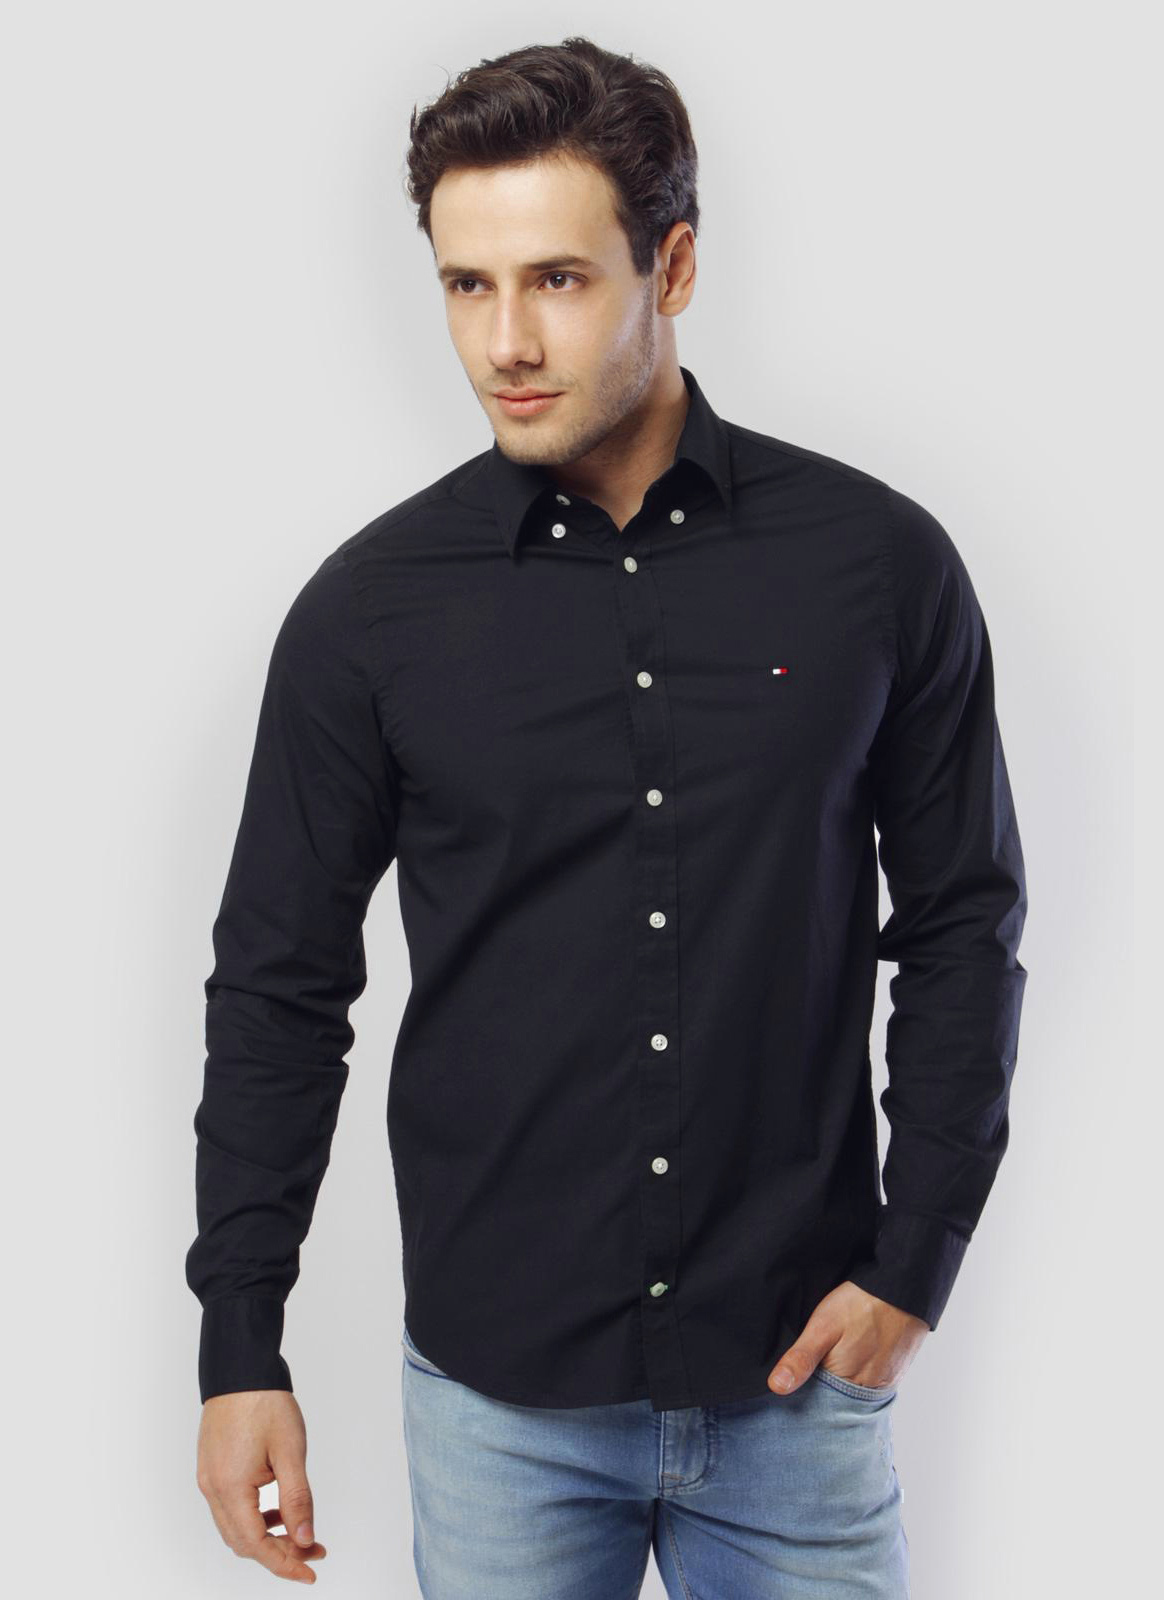 Camisa Tommy Hilfiger Masculina Regular Fit Cotton Oxford Preto